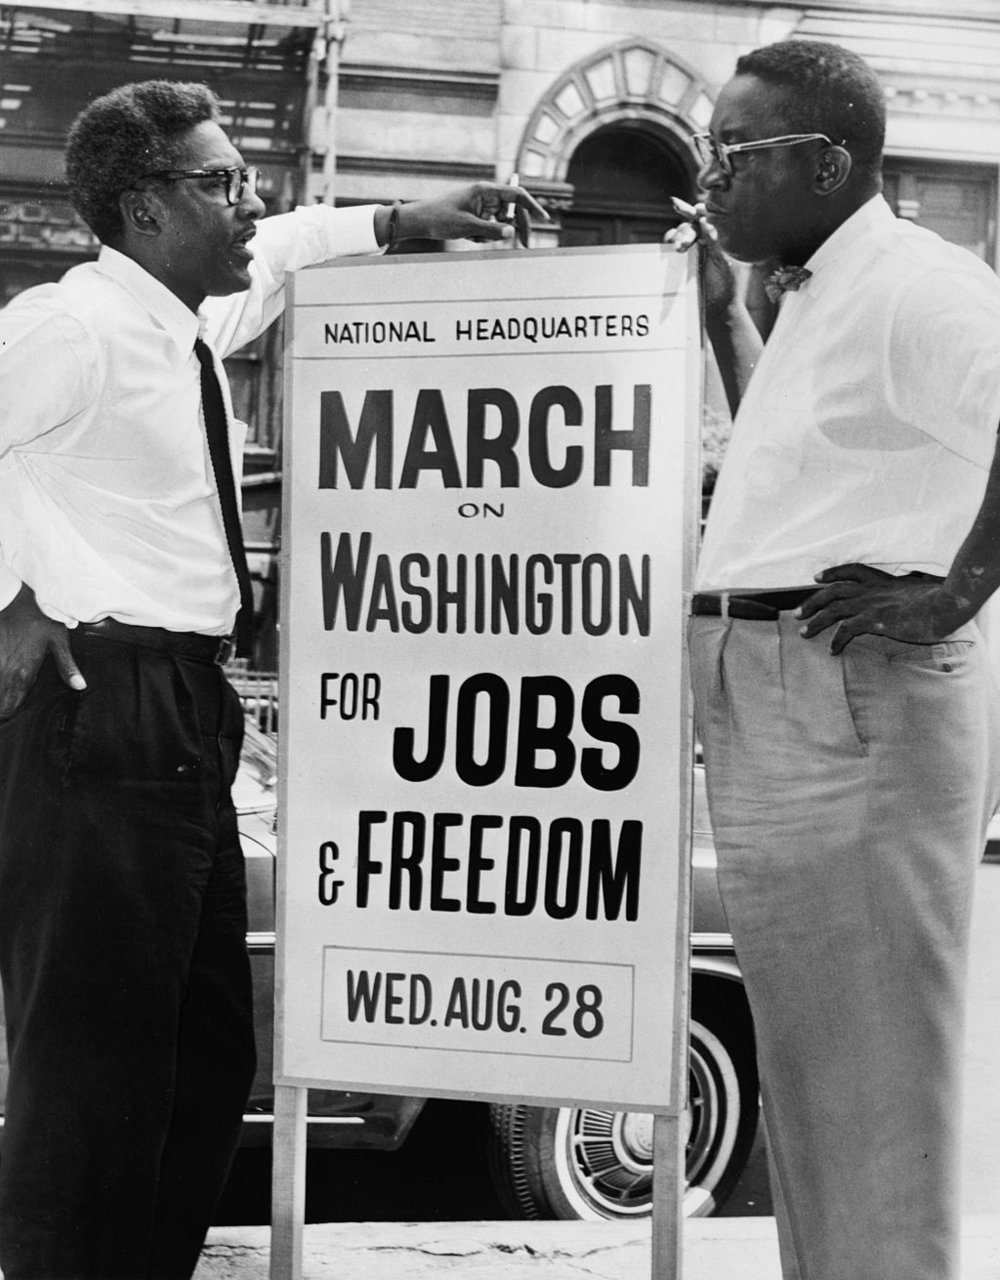 - The March on Washington,in full March on Washington for Jobs and Freedom, was a political demonstration held in Washington, D.C., in 1963 by civil rights leaders to protest racial discrimination and to show support for major civil rights legislation that was pending in Congress.